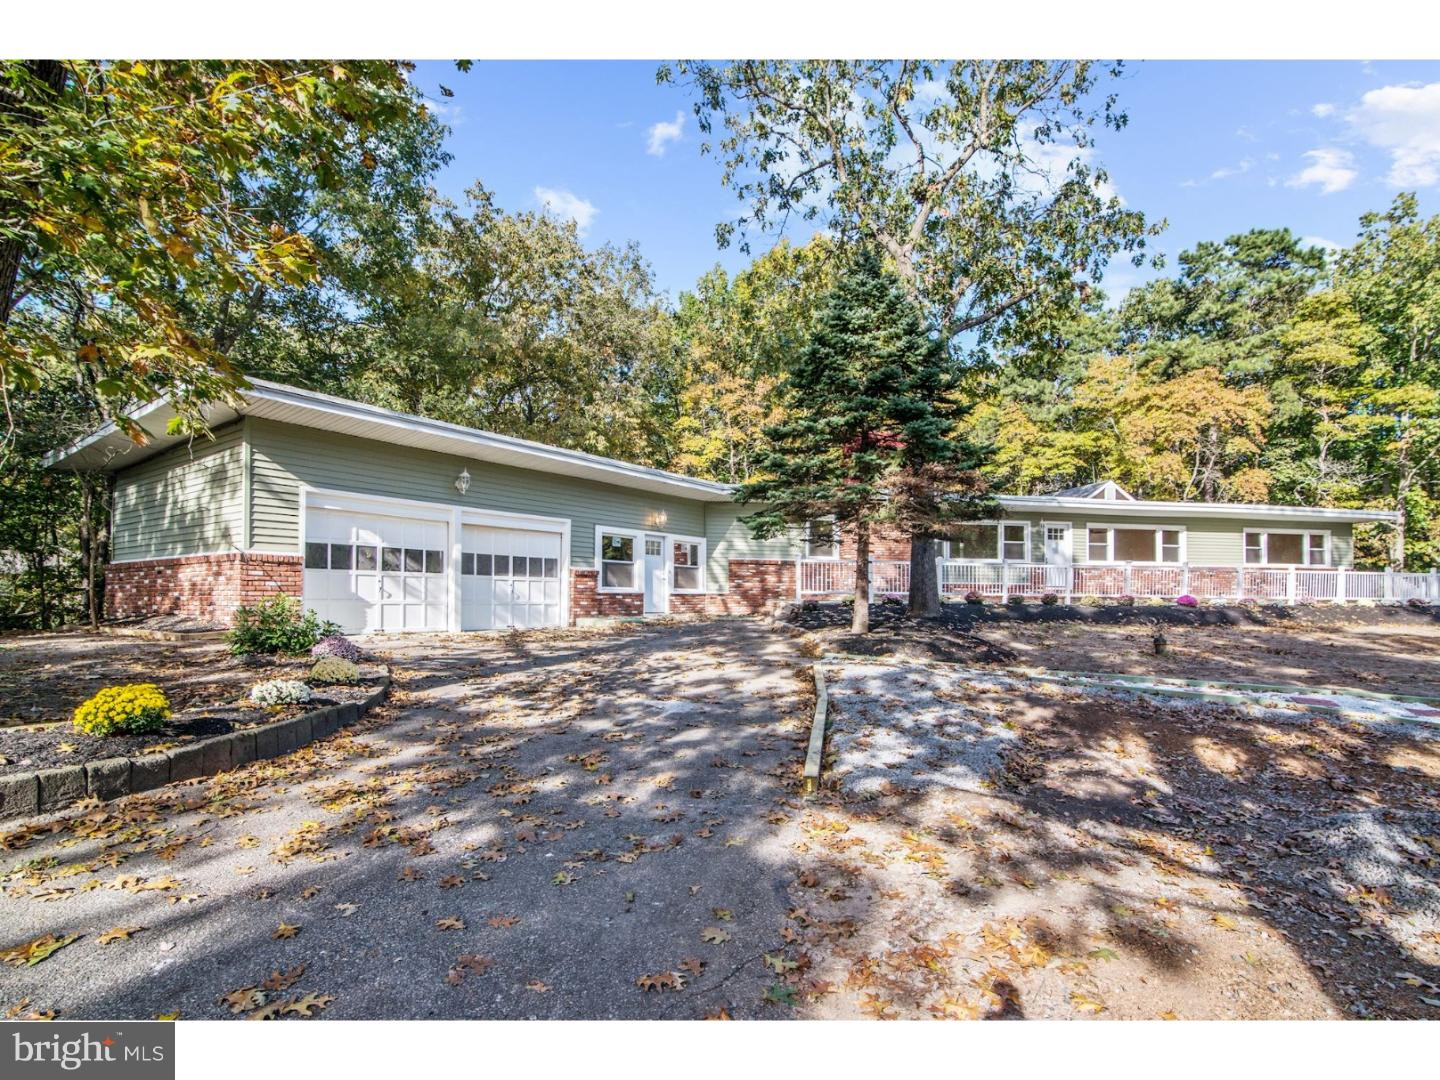 Single Family Home for Sale at 201 W BRANCH Avenue Pine Hill, New Jersey 08021 United States